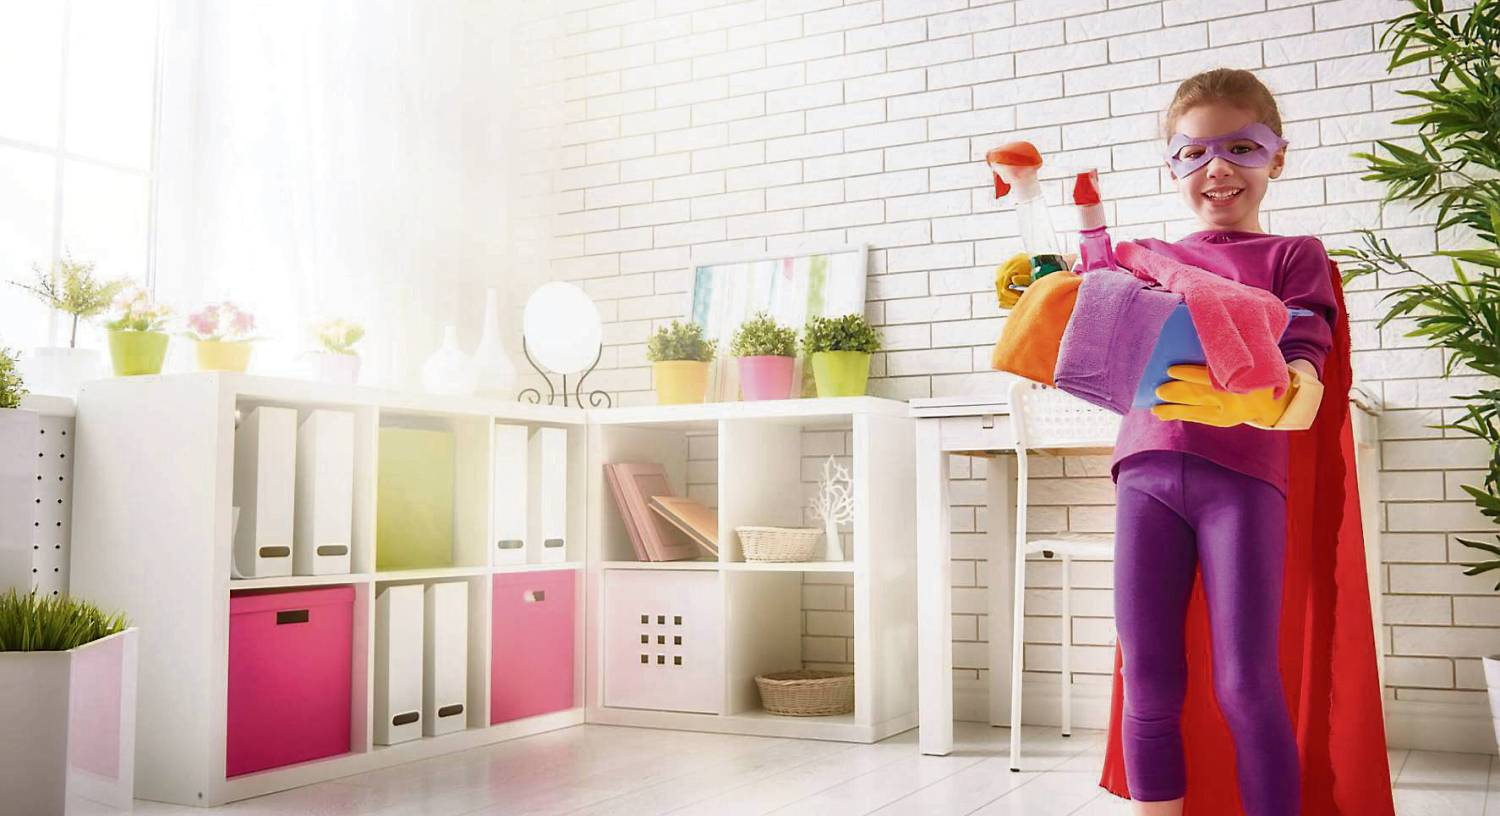 Superhero child white room with plants and boxes